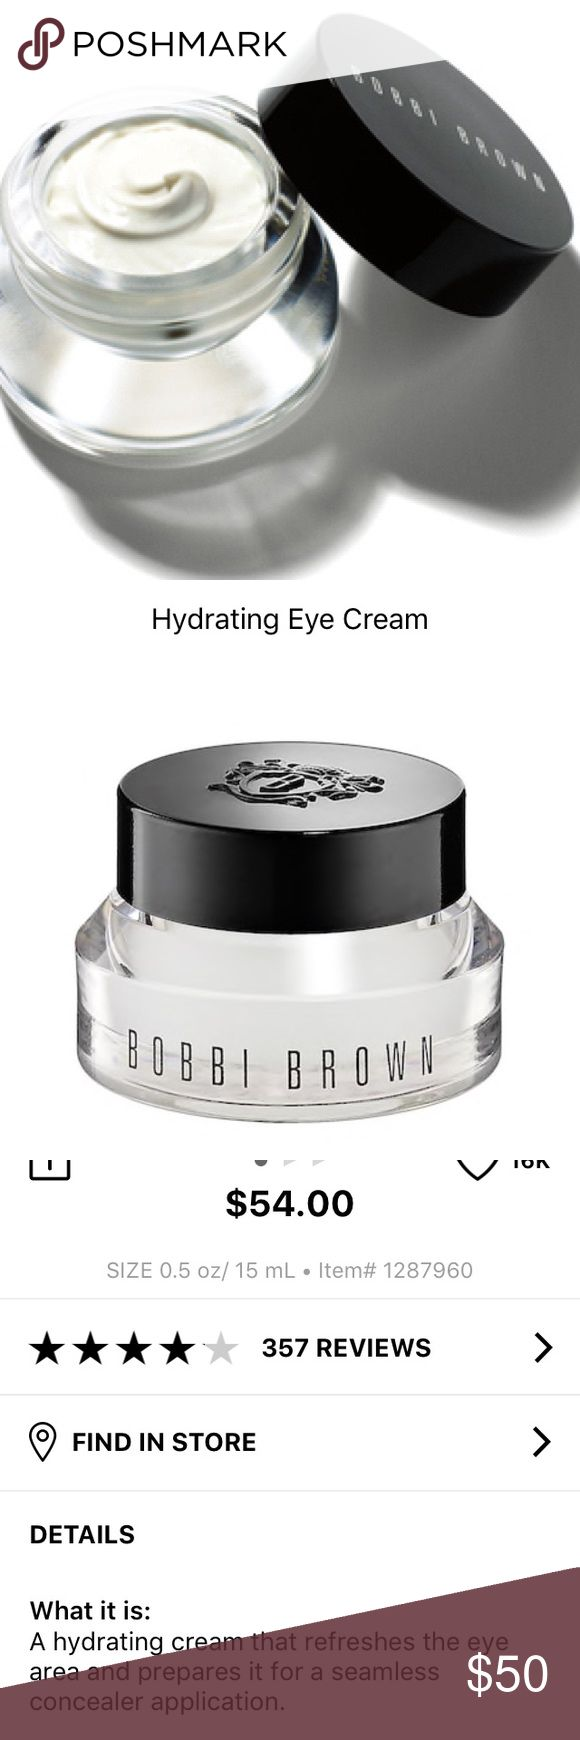 Bobbi Brown Hydrating Eye Cream NEW — sealed in box. Purchased from Sephora recently. This is a legendary eye pruning product. Prep for perfect makeup application. Price is firm. Bobbi Brown Makeup Eye Primer